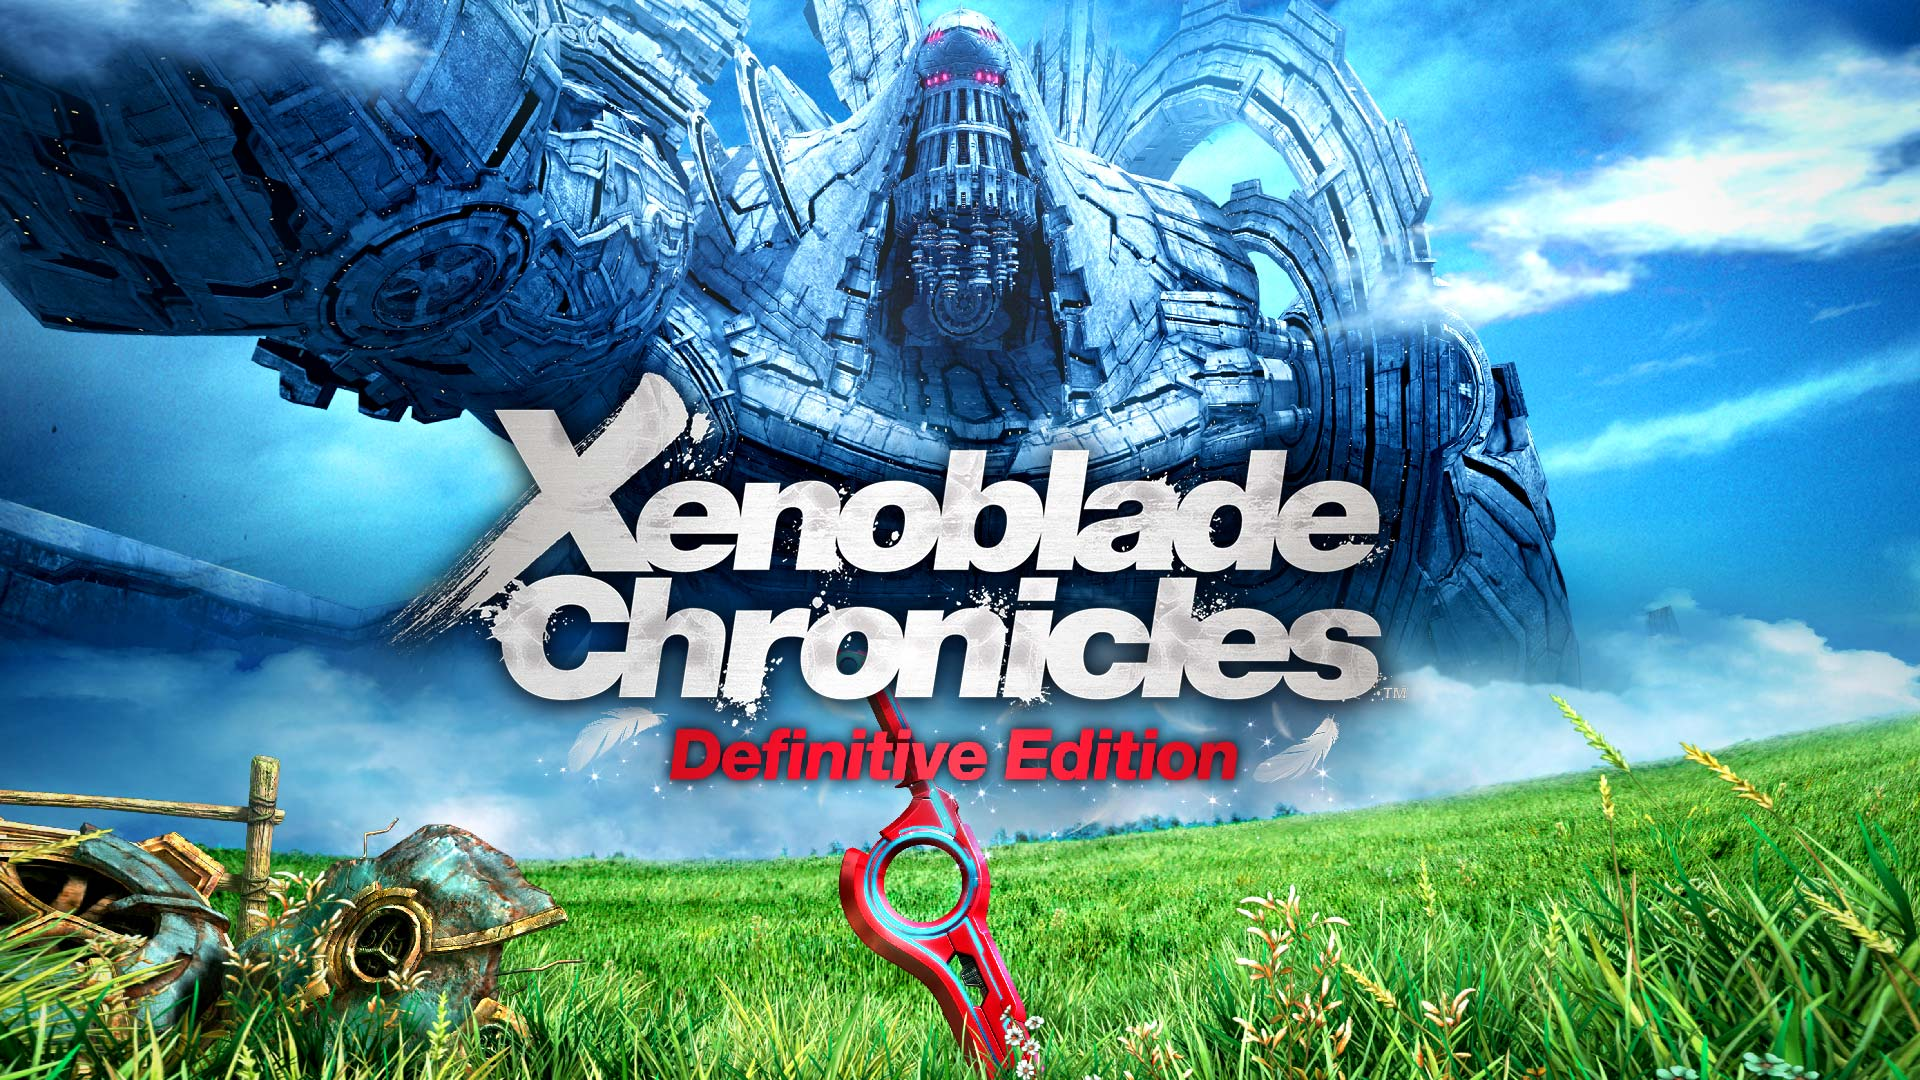 xenoblade chronicles, gifts